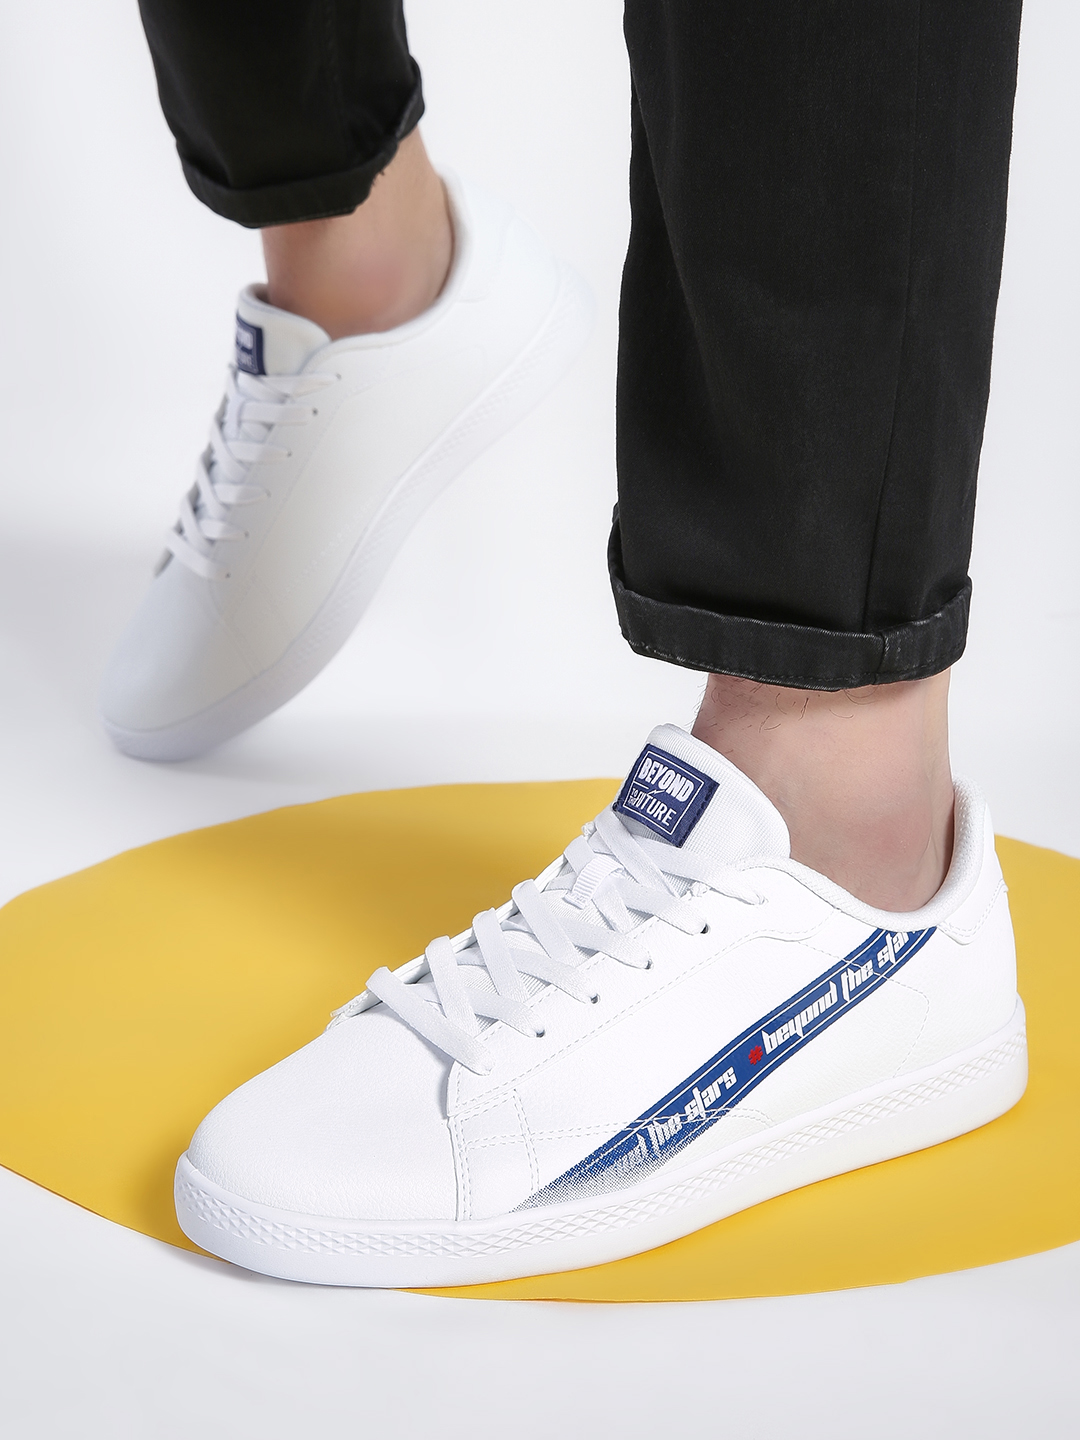 361 Degree White Skateboarding Shoes 1